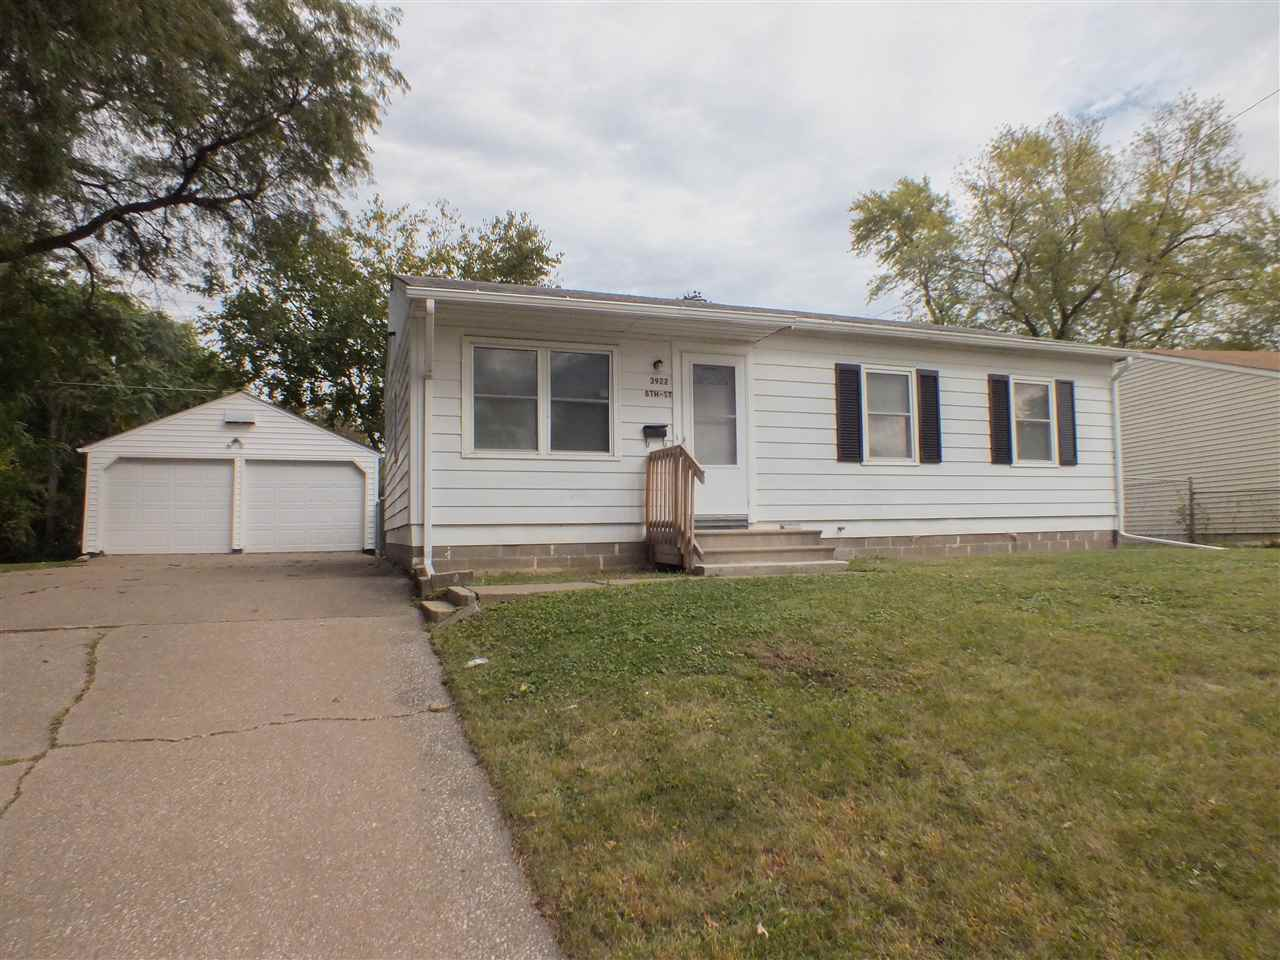 3922 8th St, East Moline, IL 61244